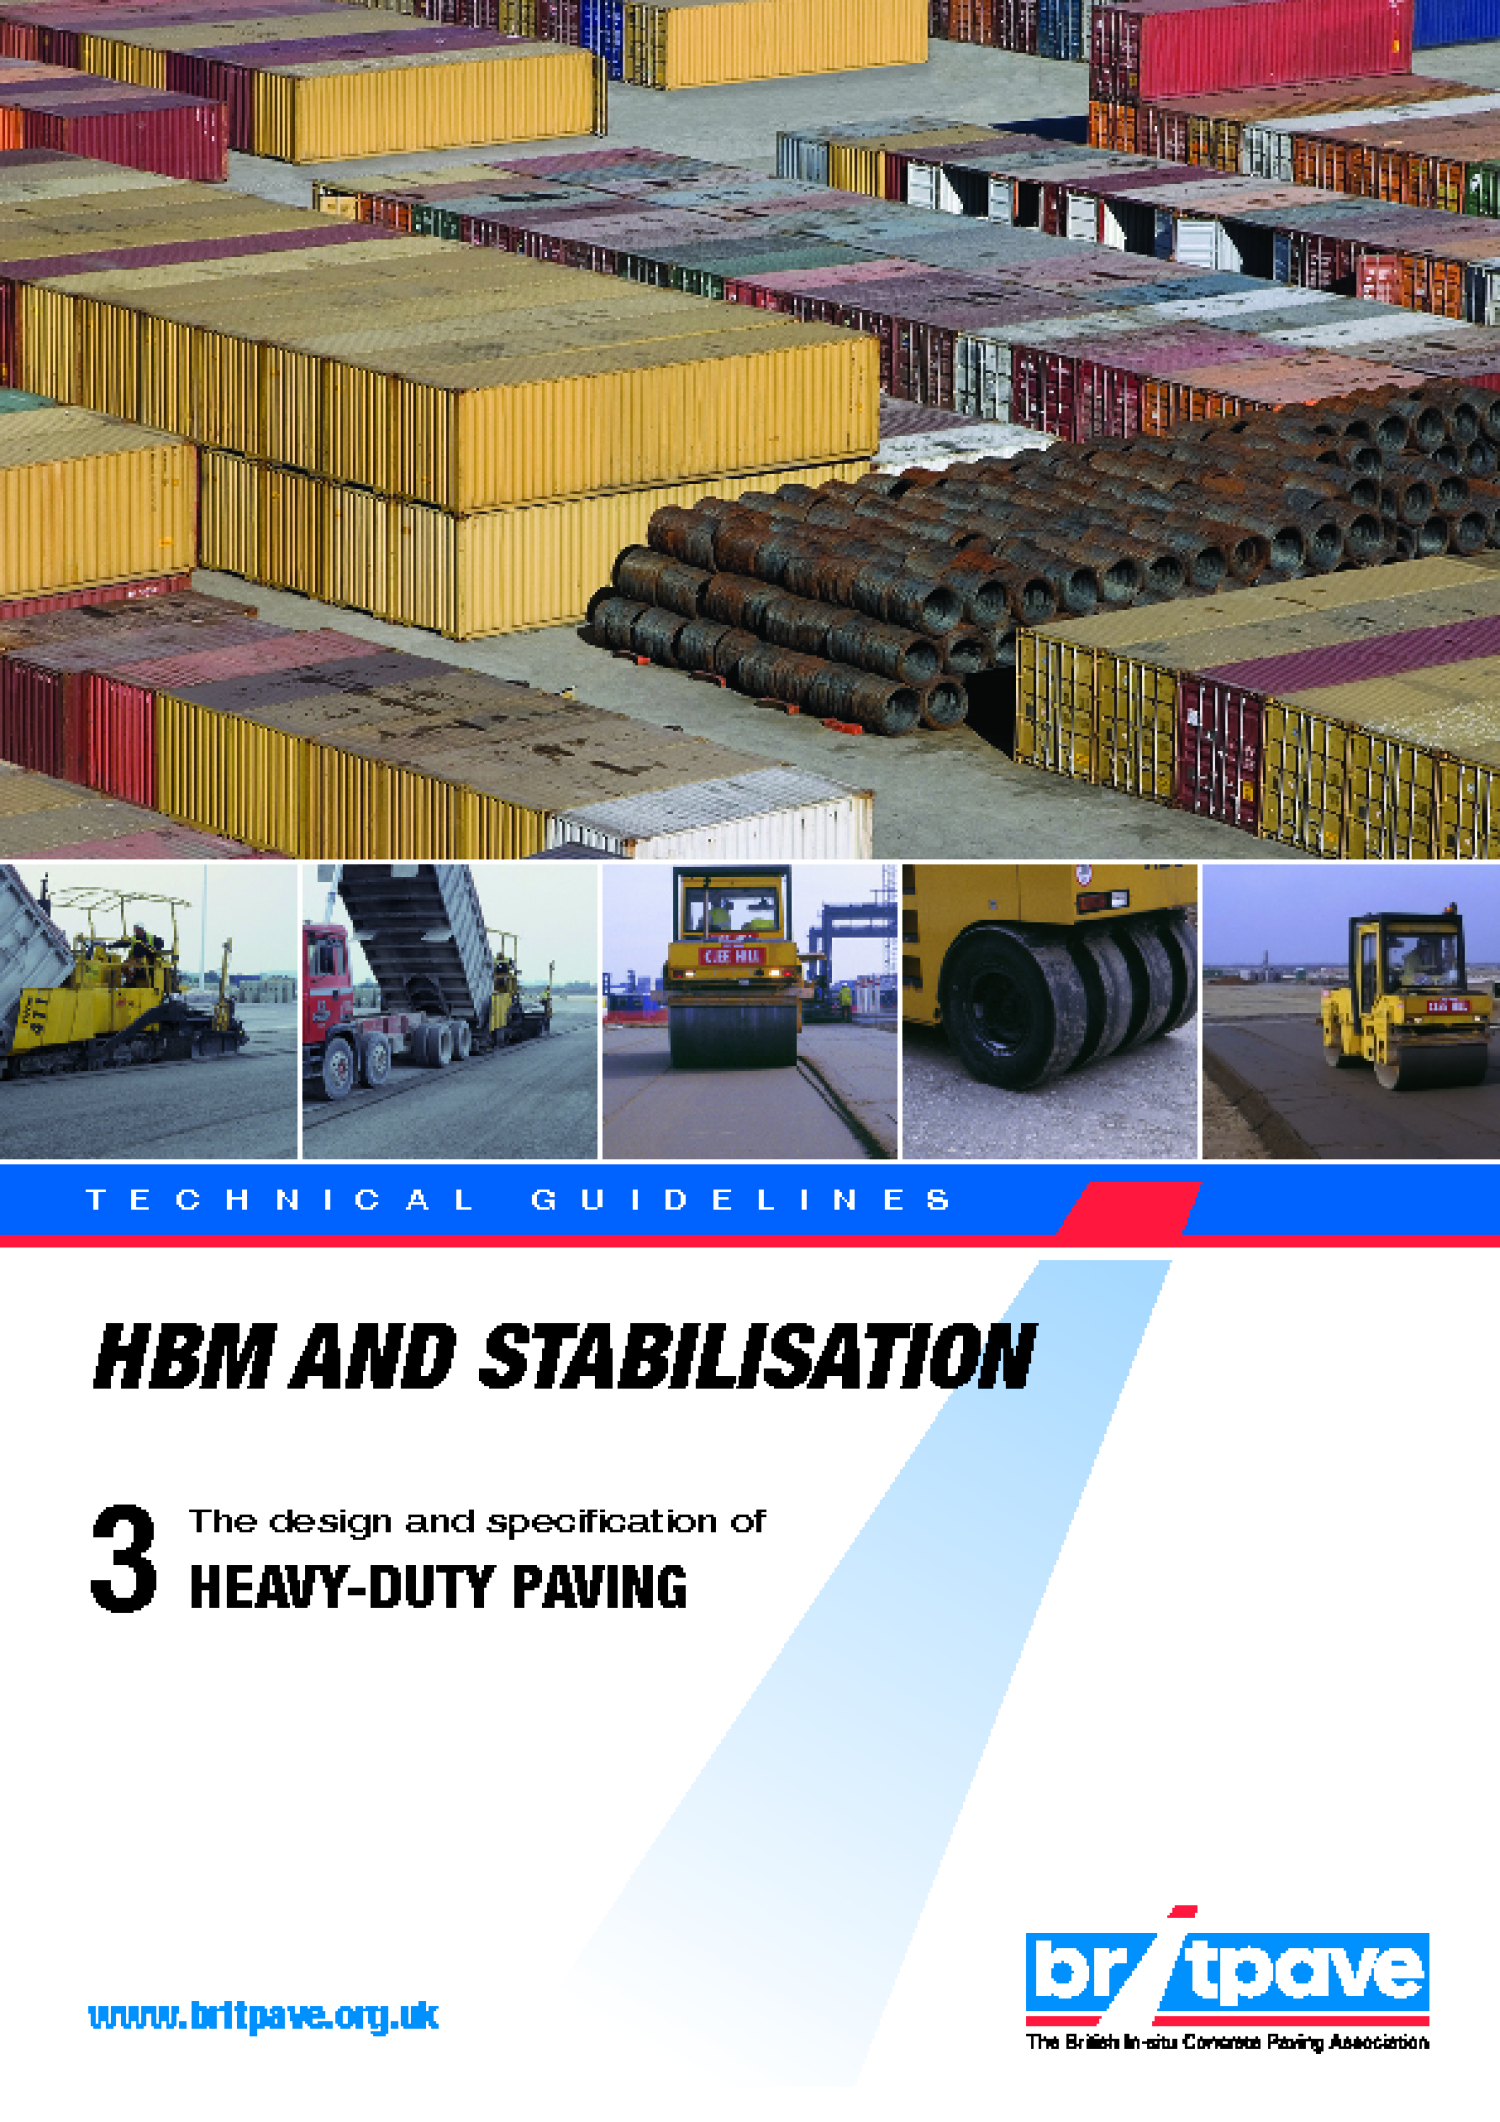 Picture of HBM and Stabilisation 3 - Heavy-Duty Paving